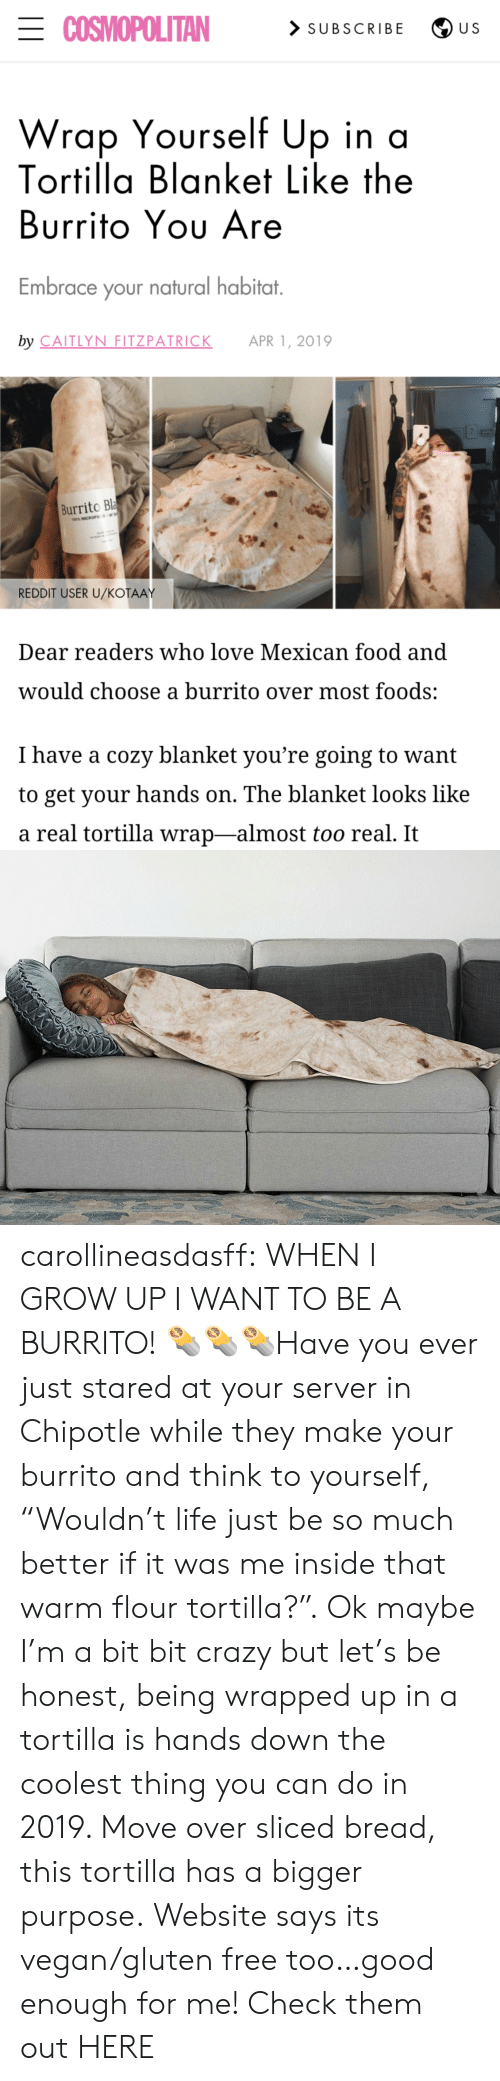 "Chipotle, Crazy, and Food: ECOSMOPOLITAN  > SUBSCRIBE  U S  Wrap Yourself Up in a  Tortilla Blanket Like the  Burrito Yου Are  Embrace your natural habitat.  by CAITLYN FITZPATRICK  APR 1, 2019  Burrito Bla  100% MICROFE  REDDIT USER U/KOŤAAY  Dear readers who love Mexican food and  would choose a burrito over most foods:  I have a cozy blanket you're going to want  to get your hands on. The blanket looks like  a real tortilla wrap-almost too real. It carollineasdasff:  WHEN I GROW UP I WANT TO BE A BURRITO! 🌯🌯🌯Have you ever just stared at your server in Chipotle while they make your burrito and think to yourself, ""Wouldn't life just be so much better if it was me inside that warm flour tortilla?"". Ok maybe I'm a bit bit crazy but let's be honest, being wrapped up in a tortilla is hands down the coolest thing you can do in 2019. Move over sliced bread, this tortilla has a bigger purpose. Website says its vegan/gluten free too…good enough for me! Check them out HERE"